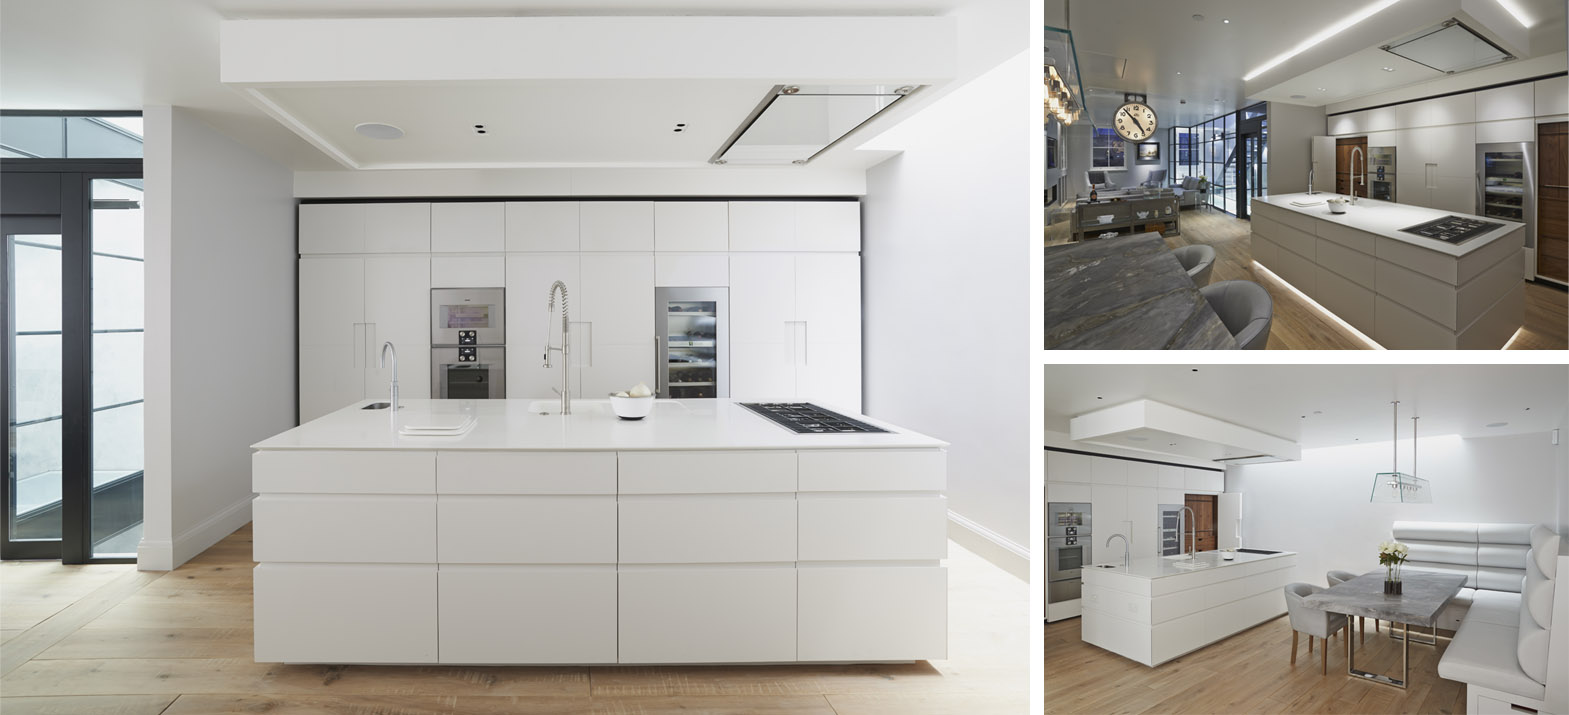 Bespoke Luxury Furniture & Luxury Kitchens by McCarron and Company